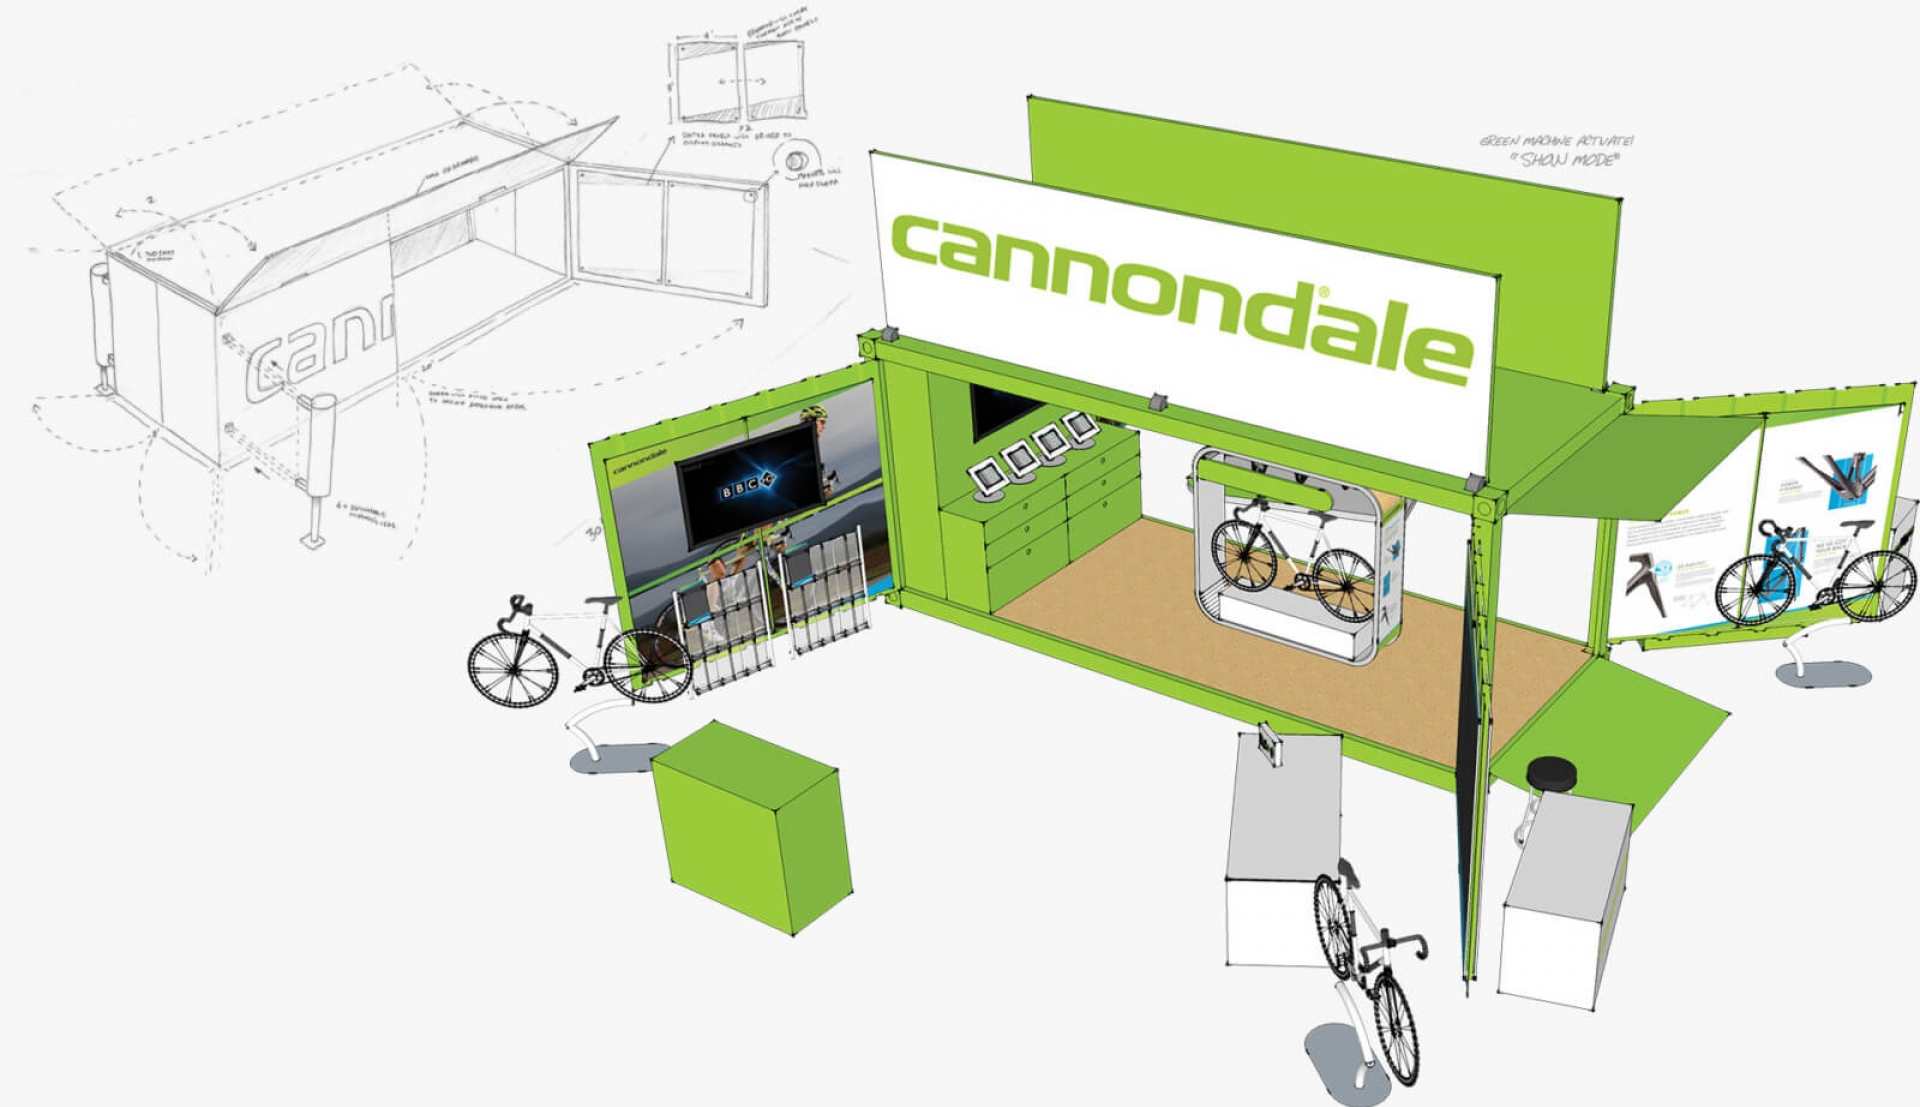 mockup of the cannondale mobile experience booth